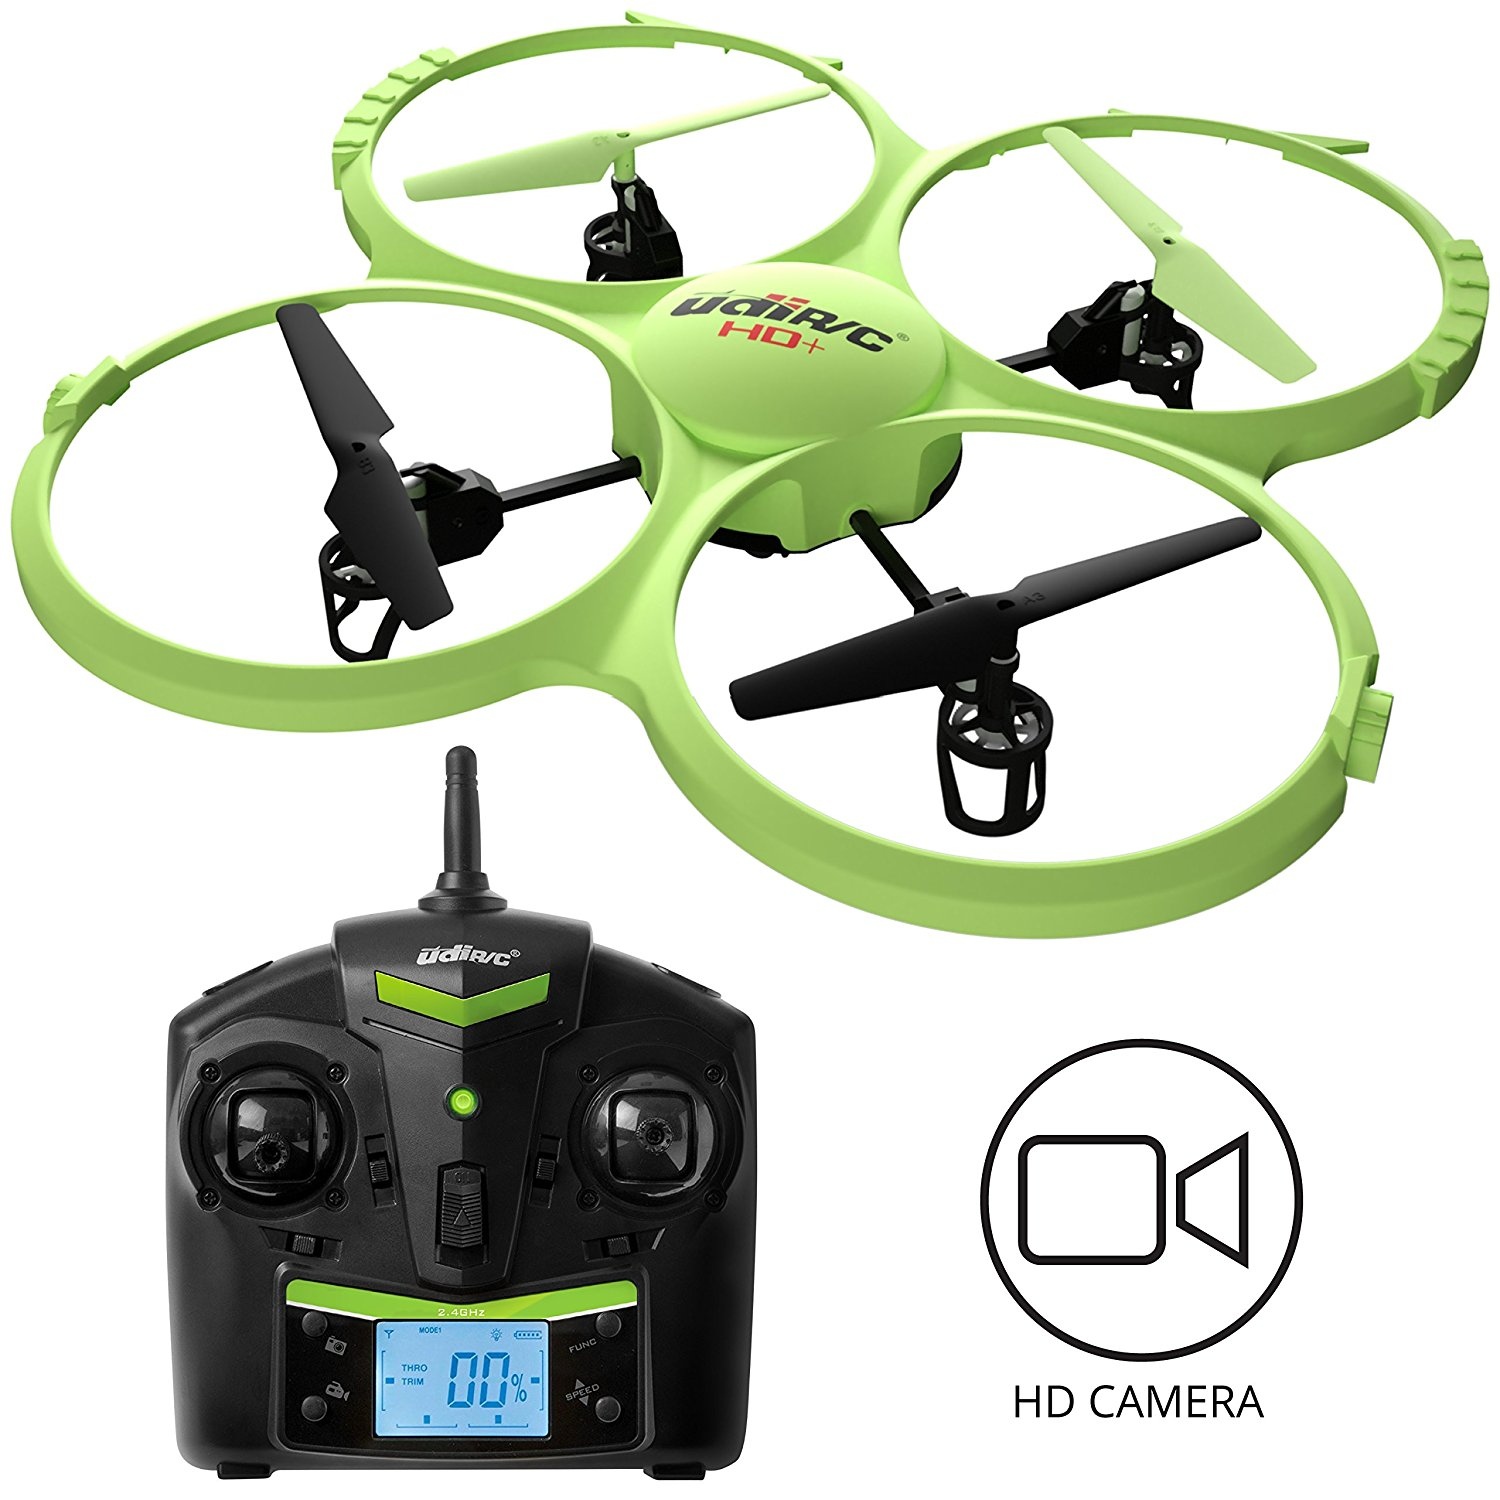 UDI 818A HD + Upgrade RC Quadcopter Drone with Camera 720p HD Headless Mode and Return... by USA Toyz